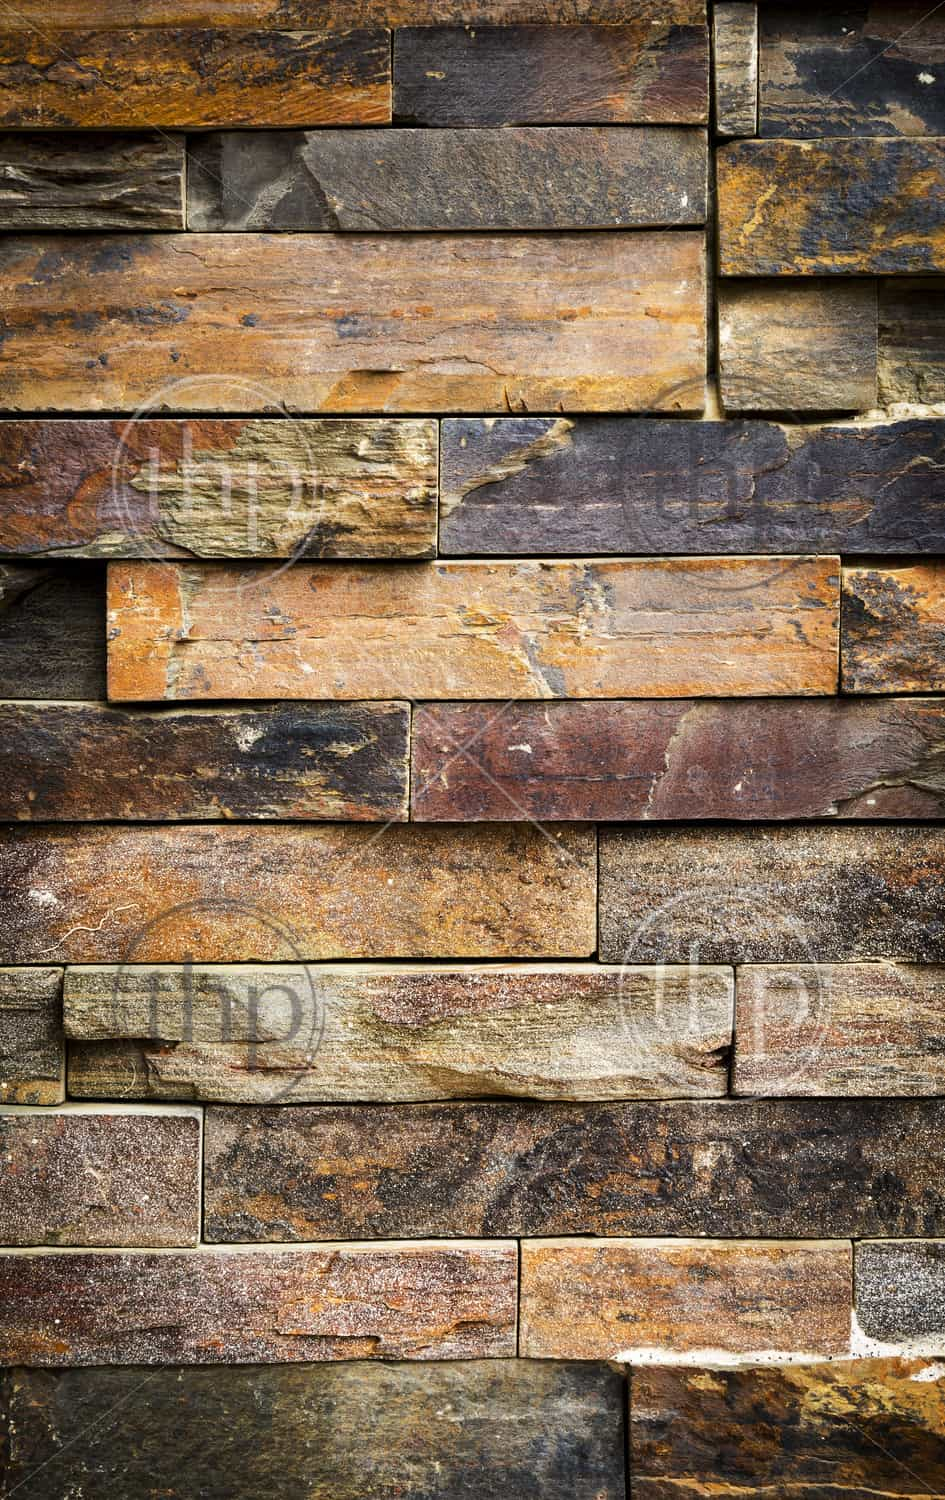 Stacked Stone Cladding Building Facade For Background Texture